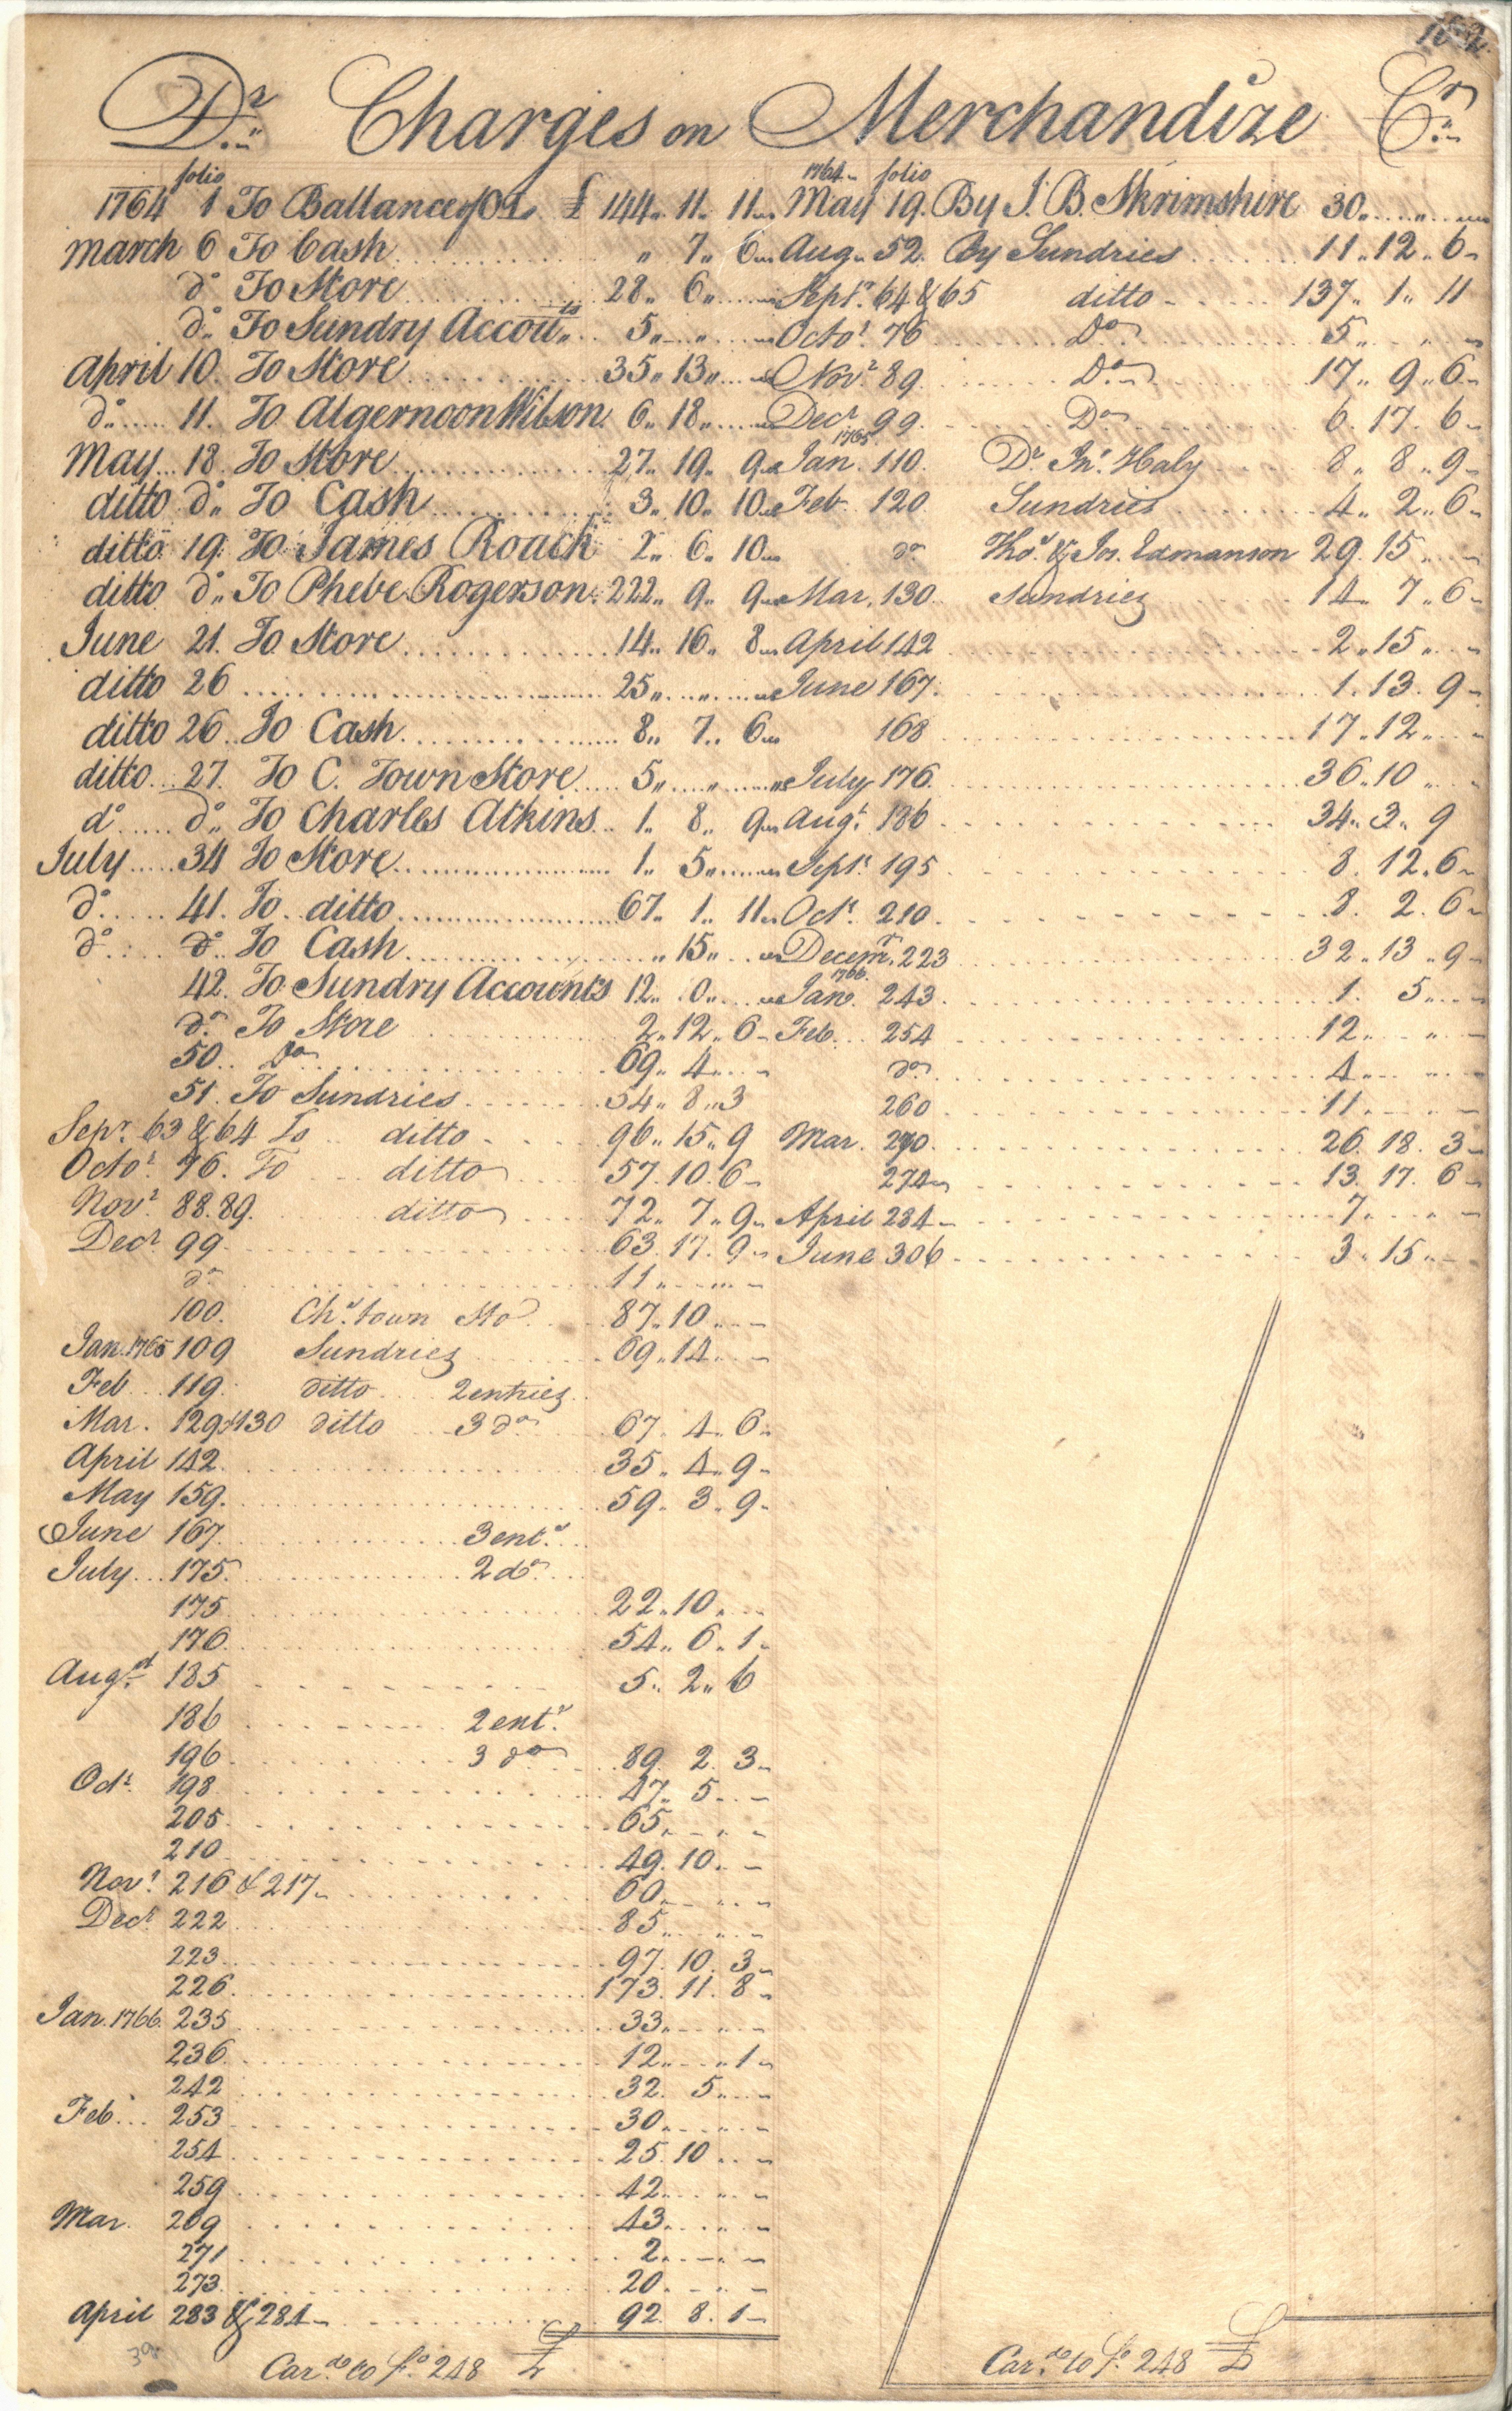 Plowden Weston's Business Ledger, page 102